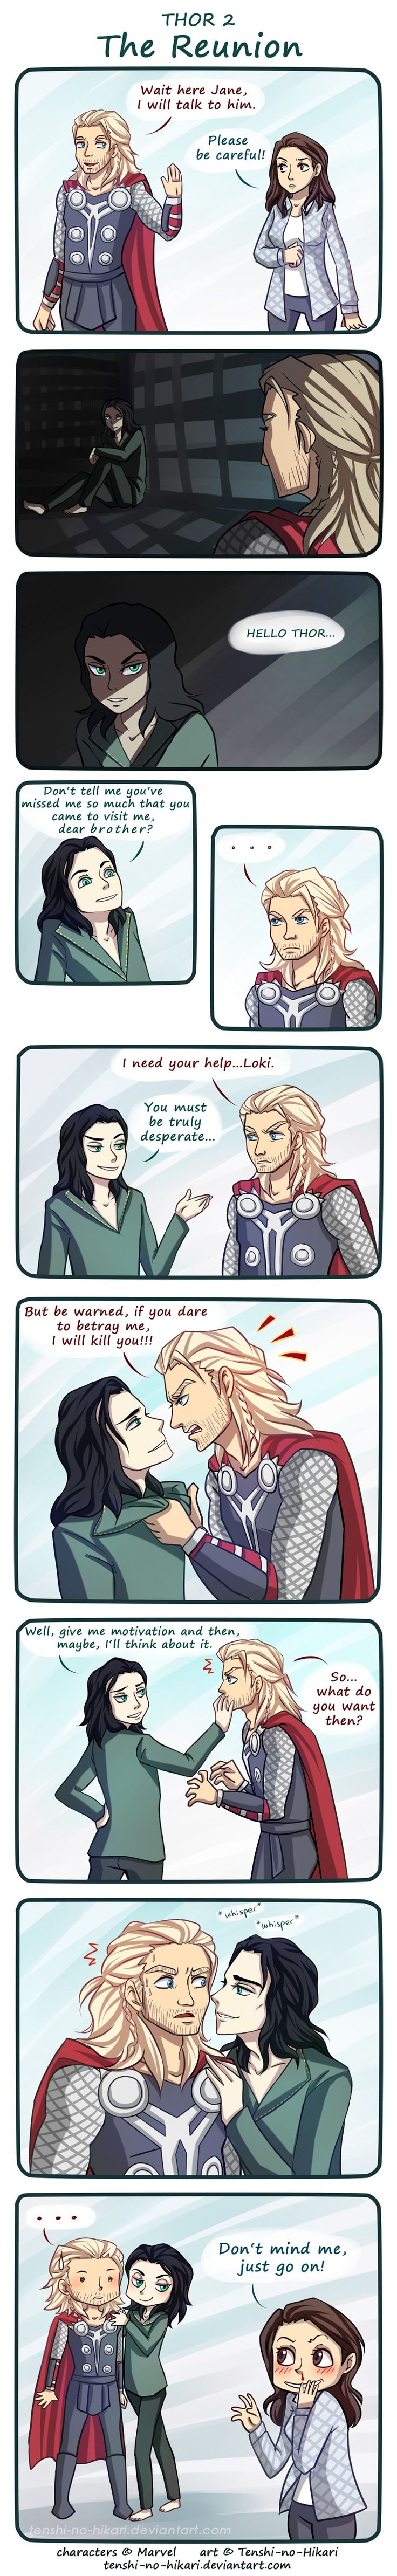 Thor 2 - The Reunion by Tenshi-no-Hikari.deviantart.com on @deviantART